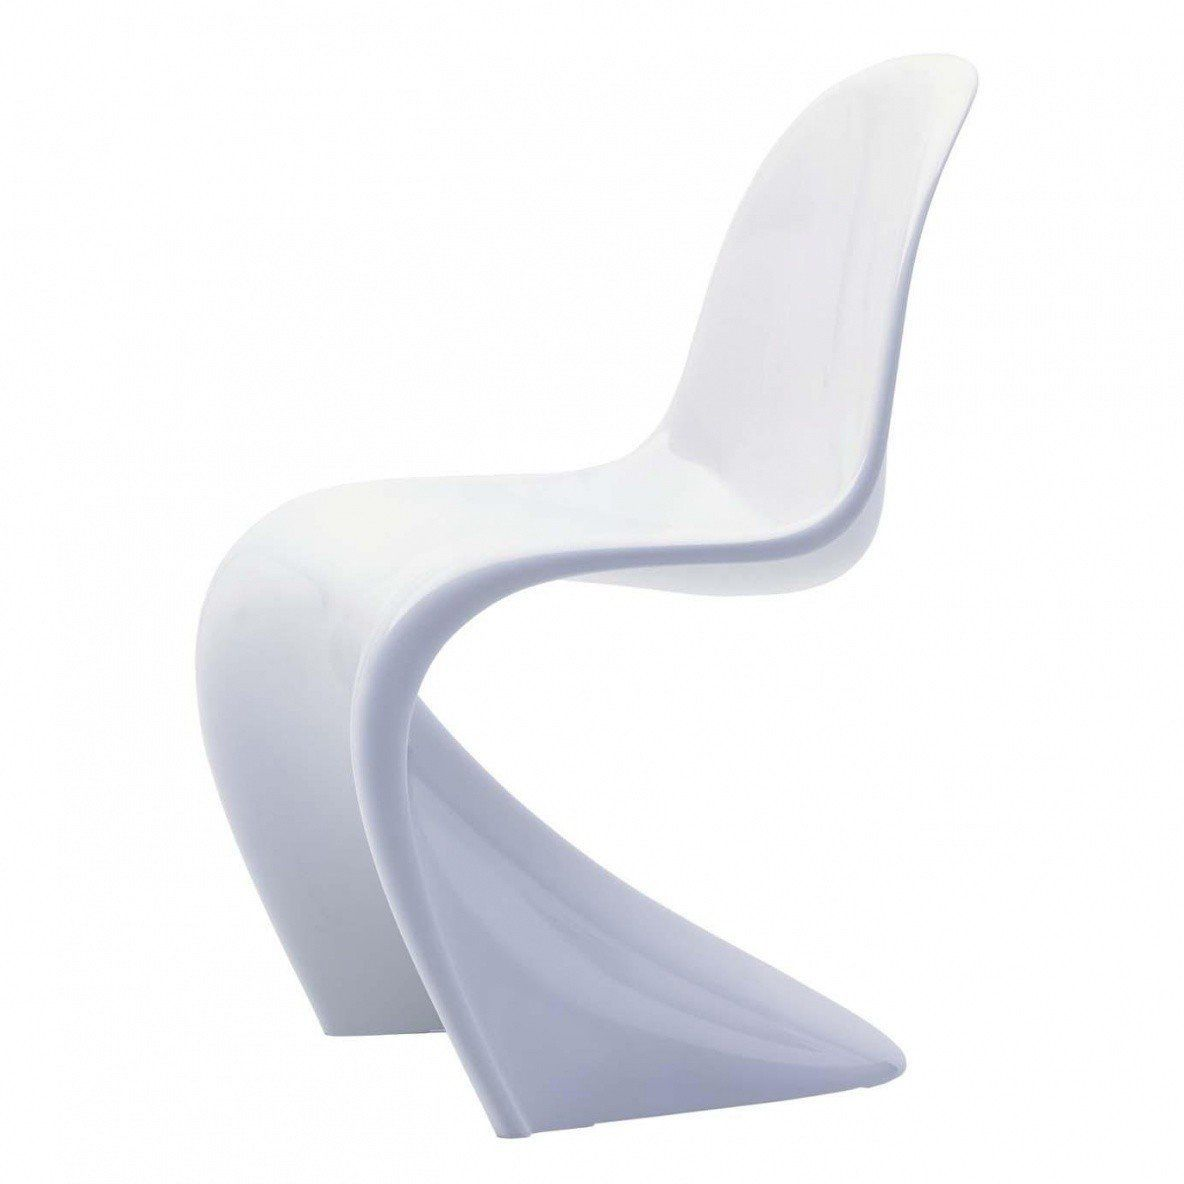 Vitra Panton Chair panton chair vitra ambientedirect com